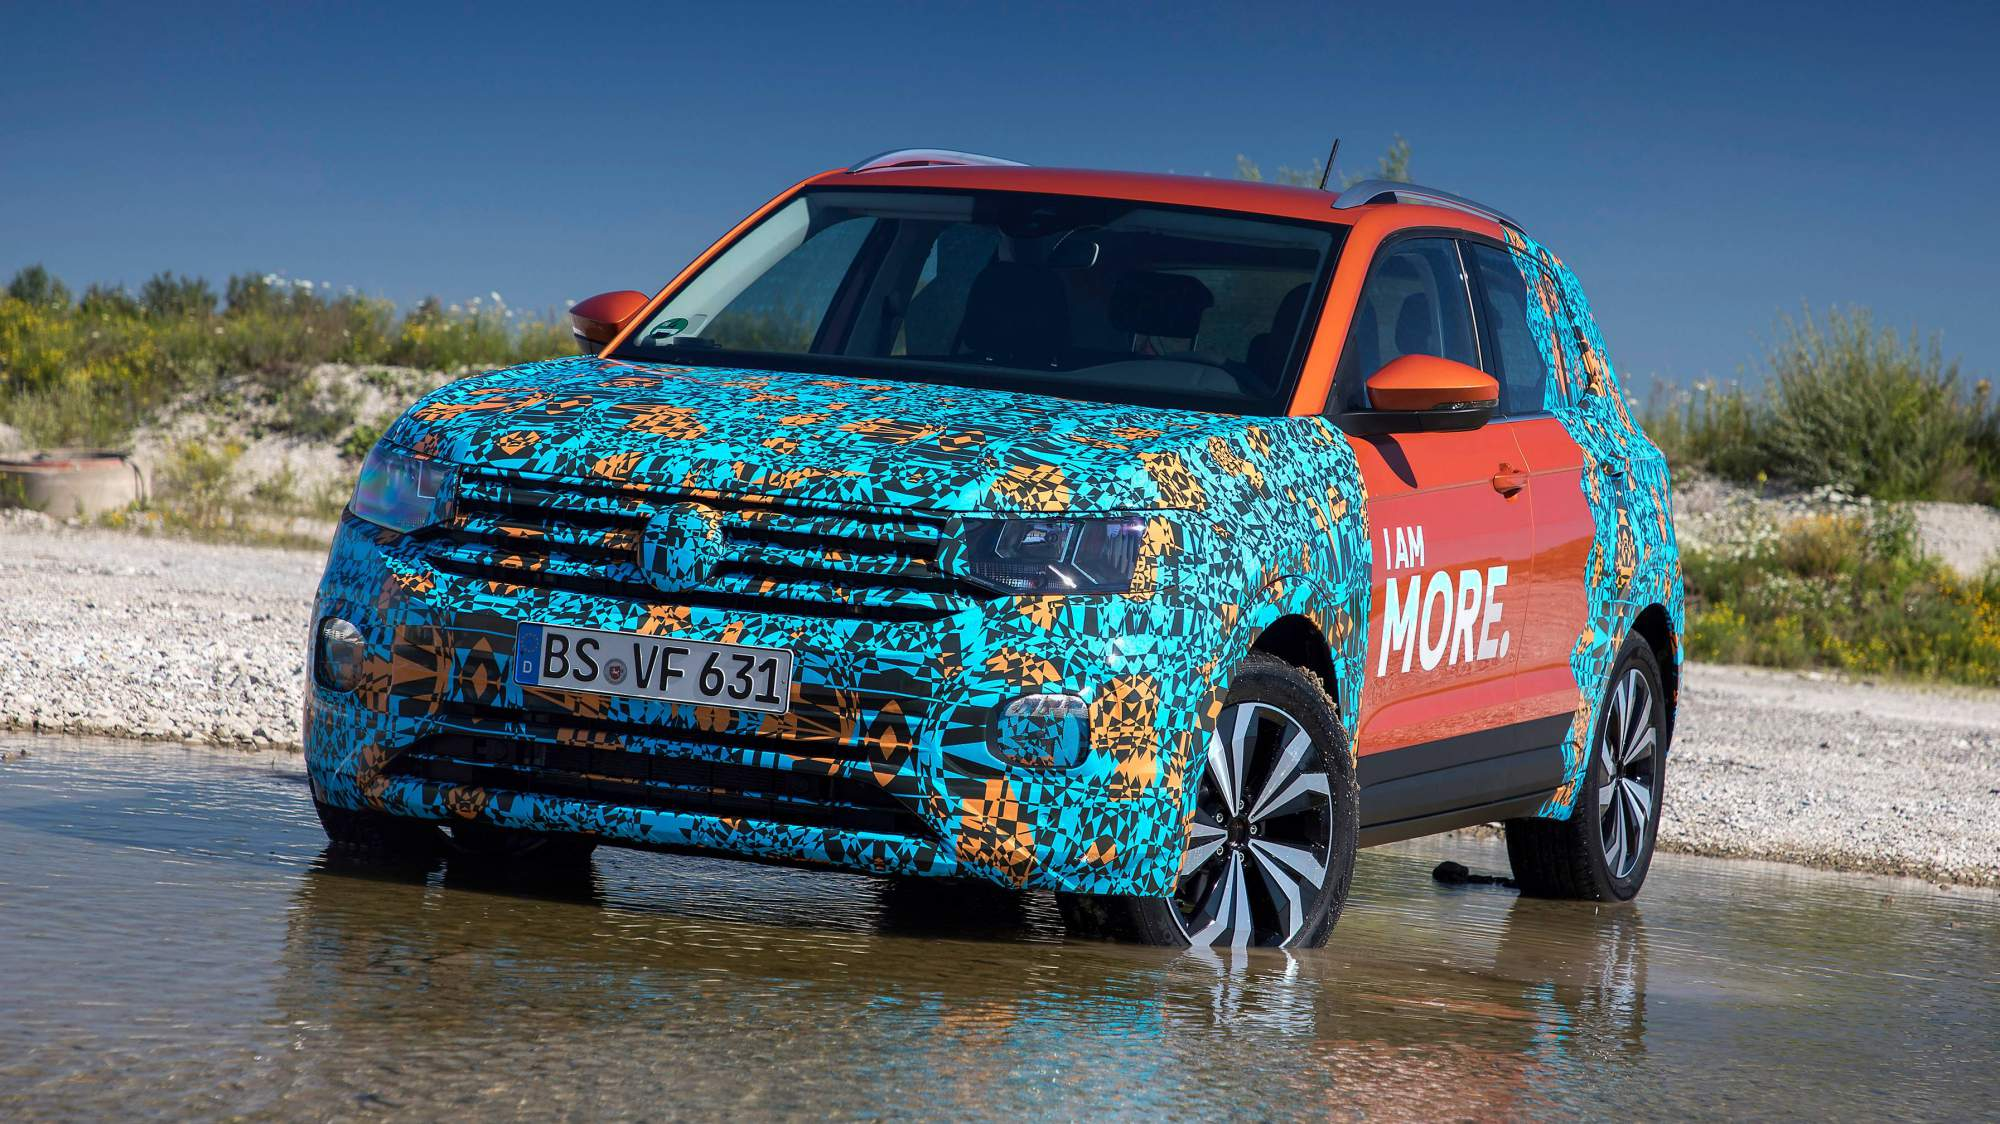 https://cdn.drivemag.net/media/default/0001/89/2019-VW-T-Cross-0-8687.jpeg